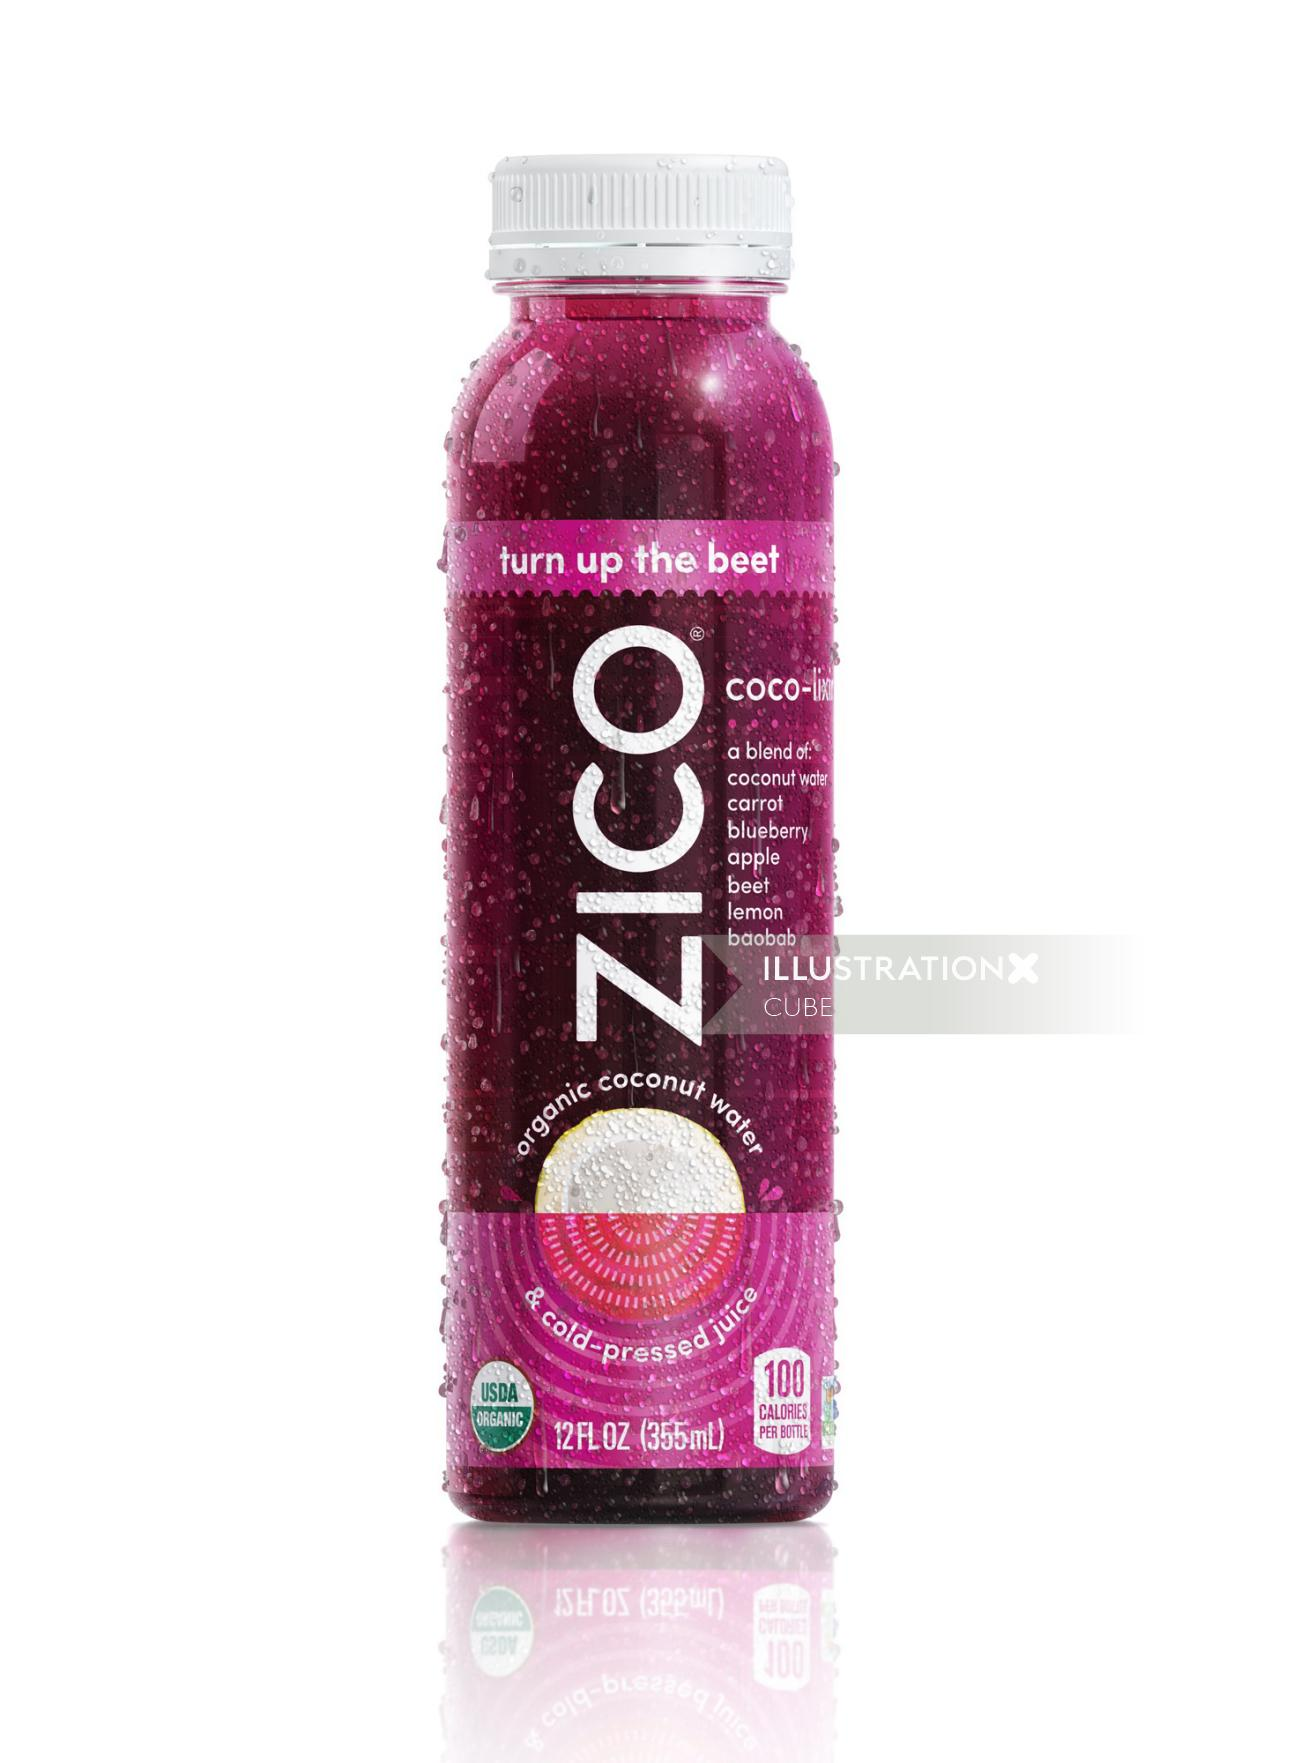 Zico coconut water packaging illustration